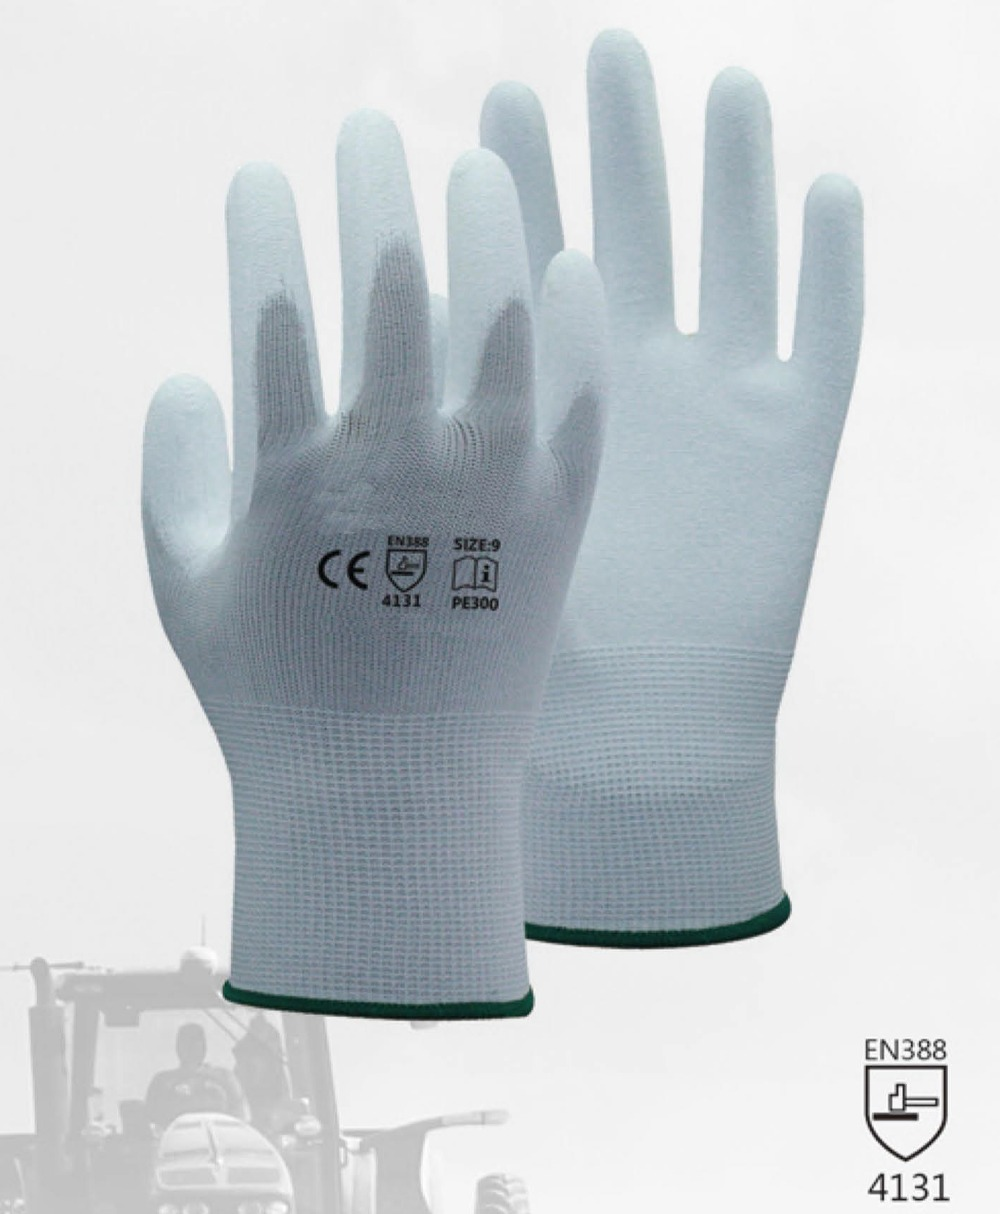 ESD Safety Gloves Anti-static Glove white black Nylon Glove With PU Polyurethane Palm Dipped Anti Static Work Glove